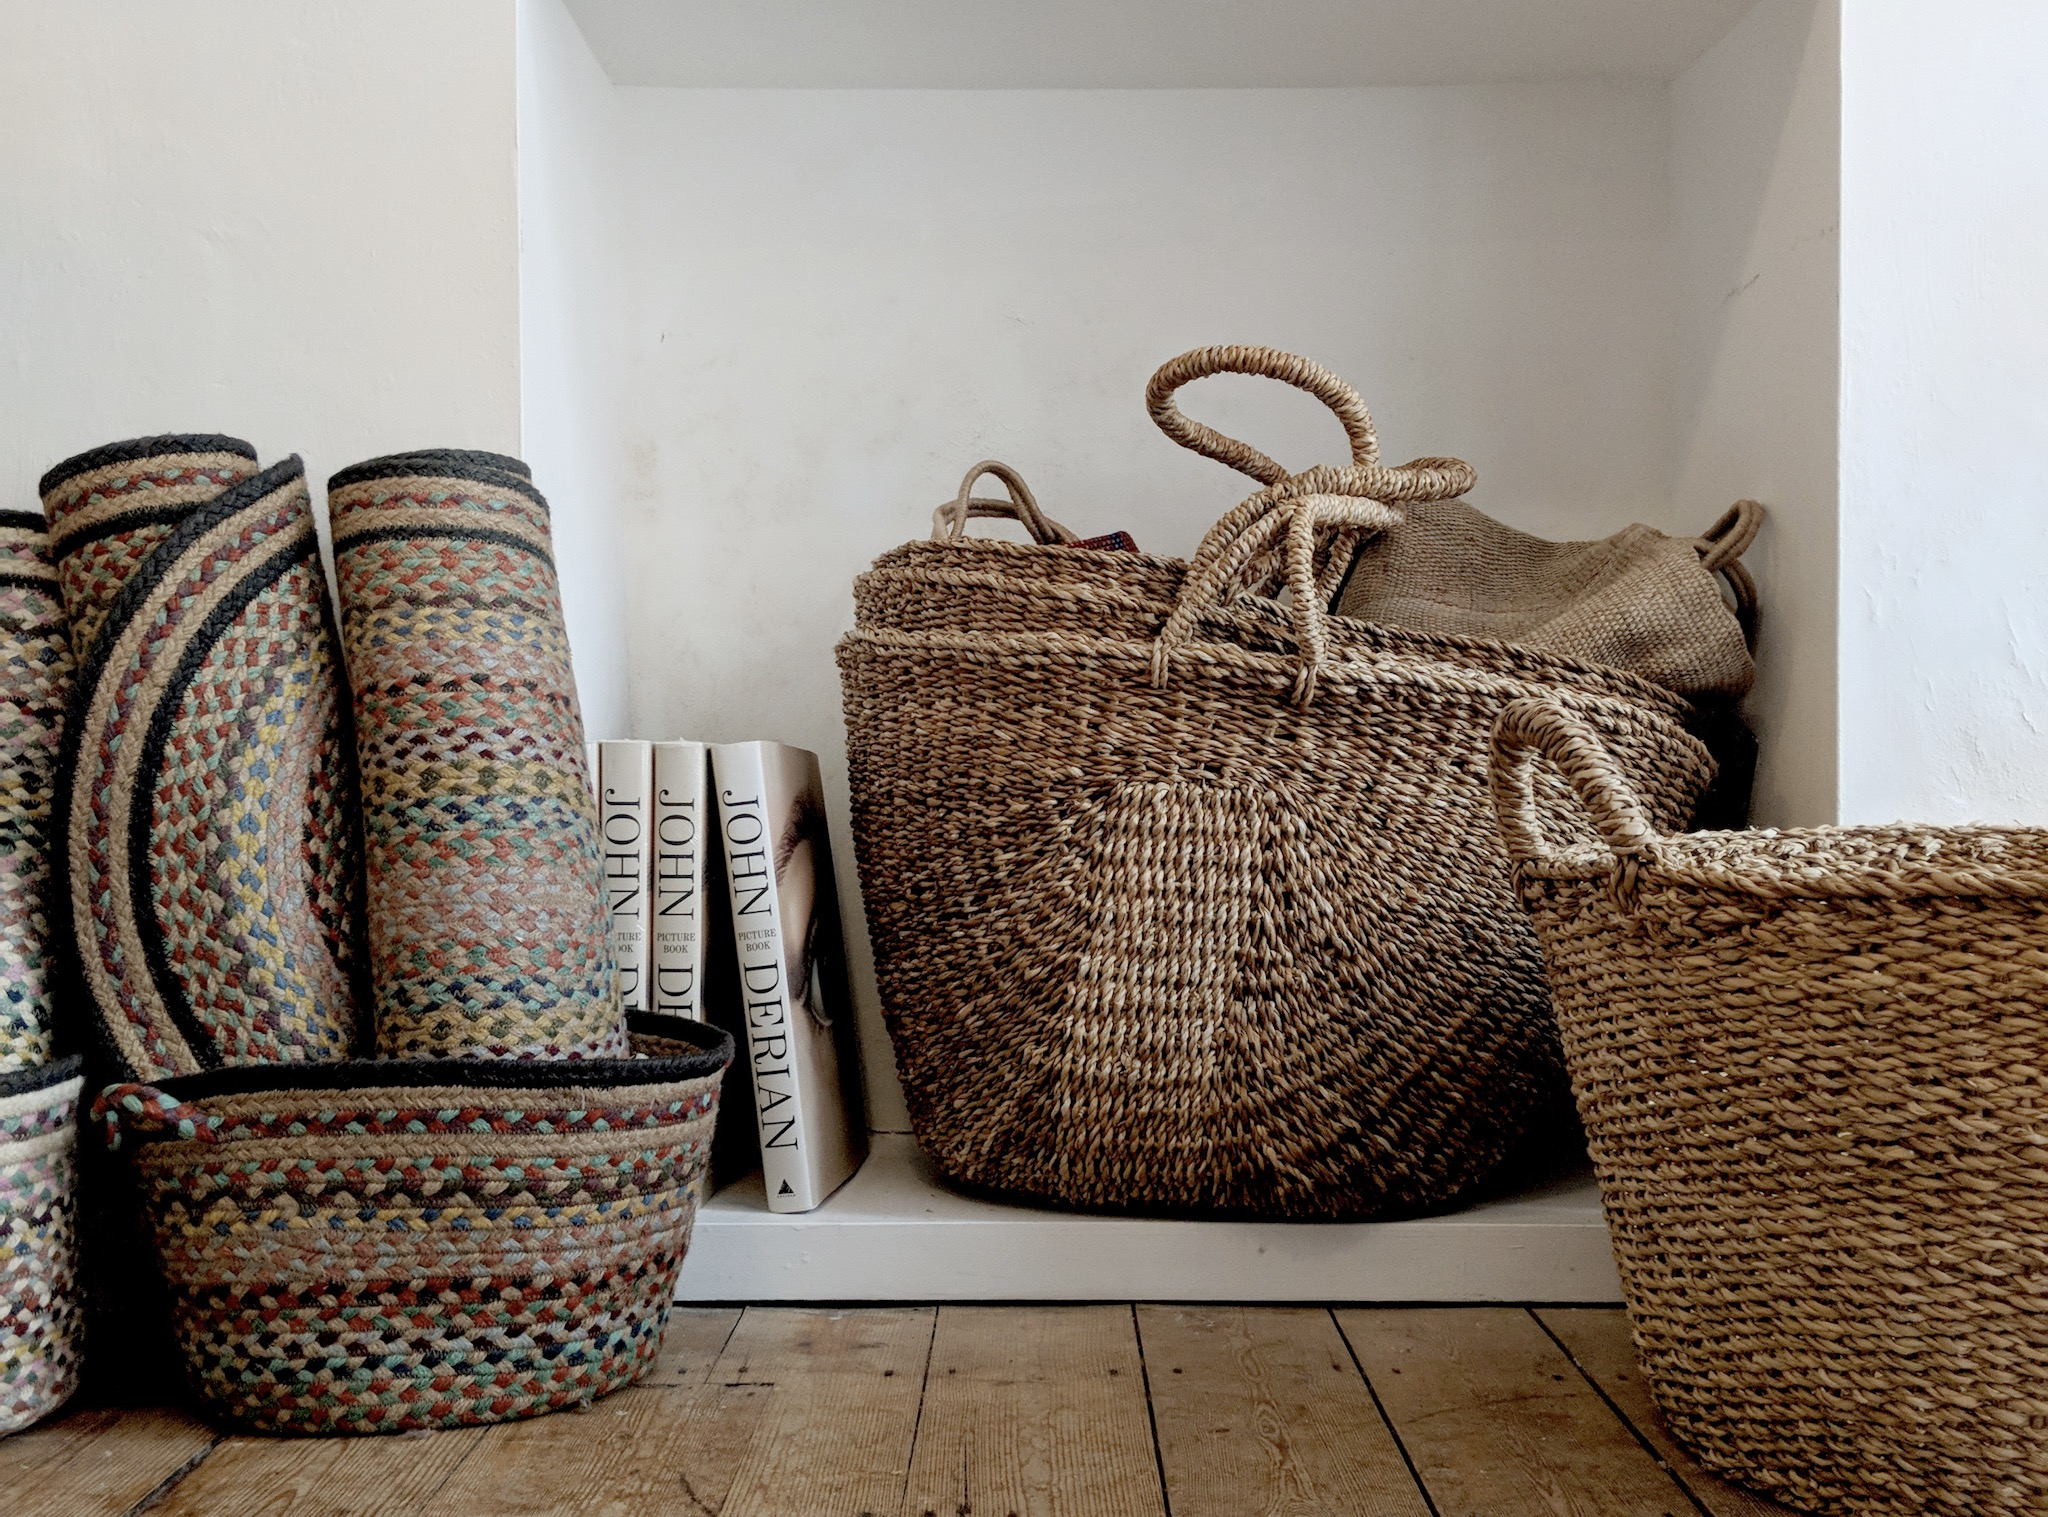 Rustic Woven Baskets at The Hambeldon, Winchester